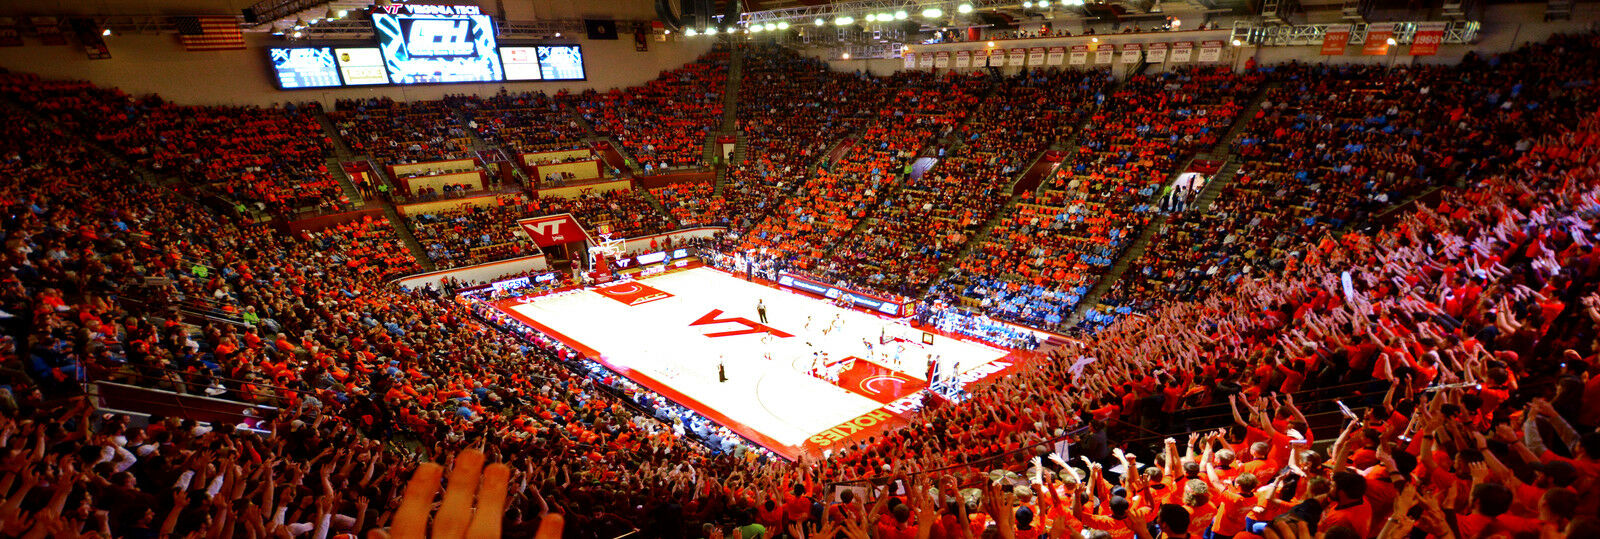 Clemson Tigers at Virginia Tech Hokies Basketball